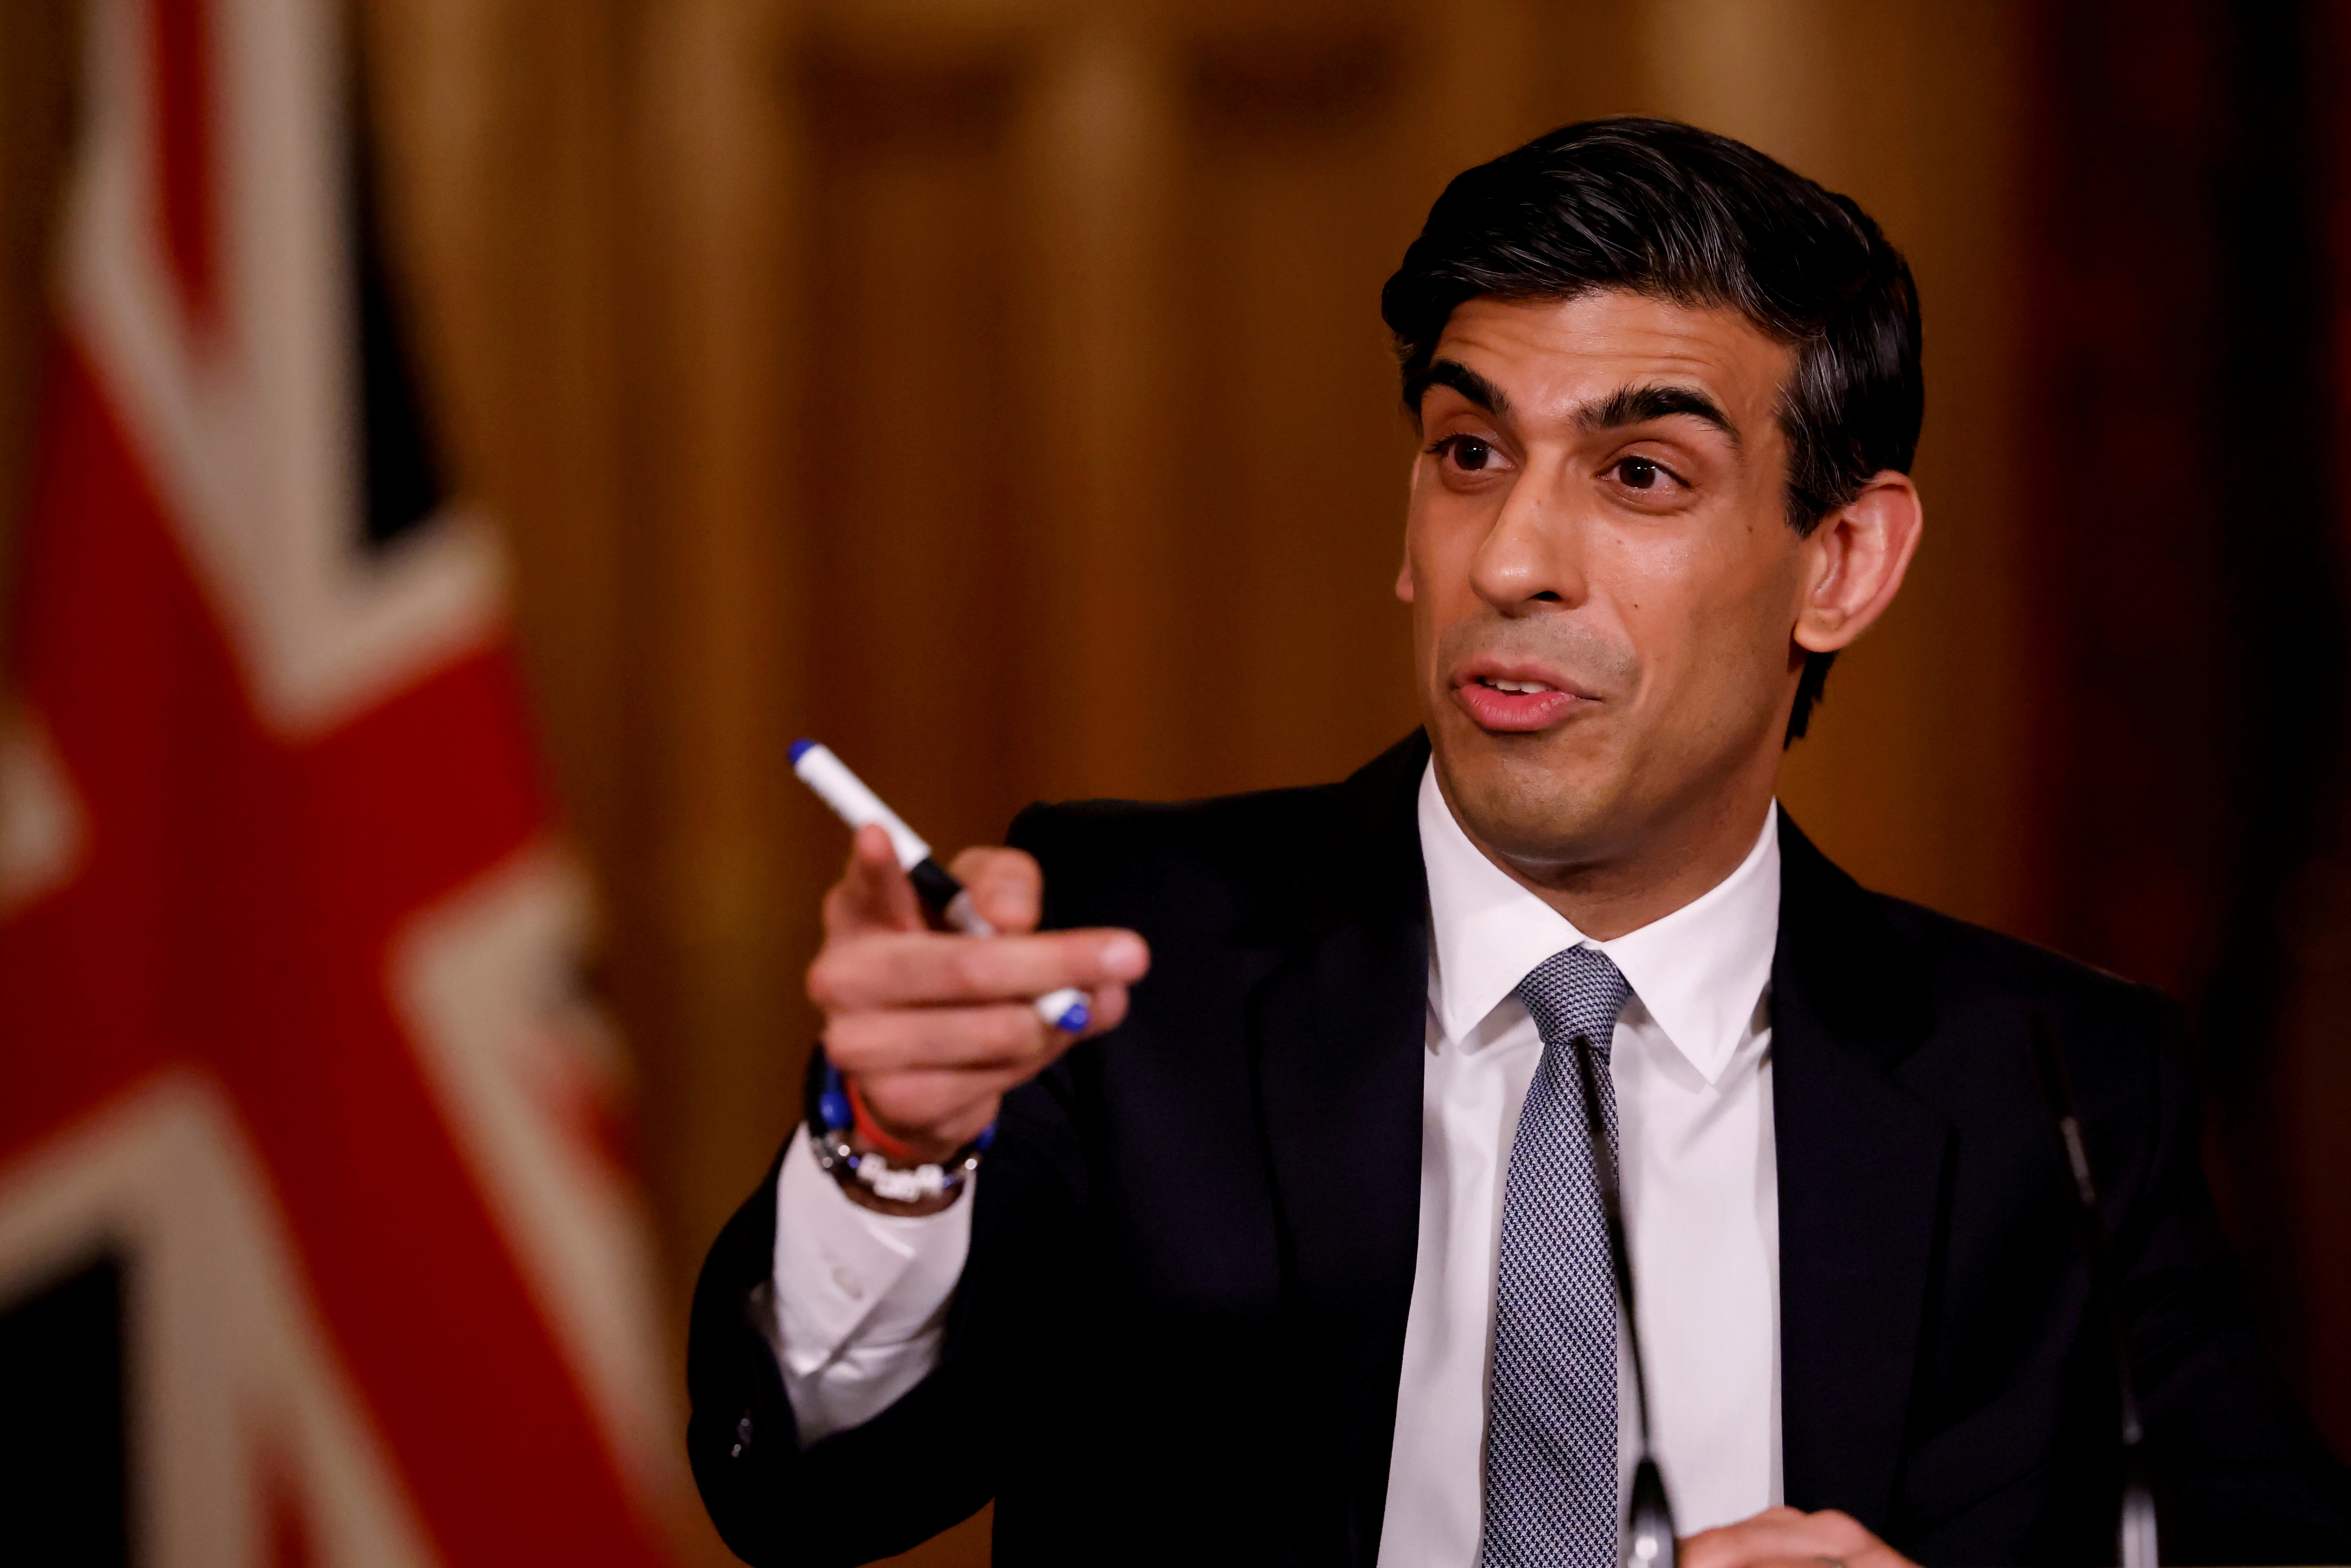 British finance minister Rishi Sunak attends a virtual press conference inside 10 Downing Street in central London, Britain March 3, 2021.